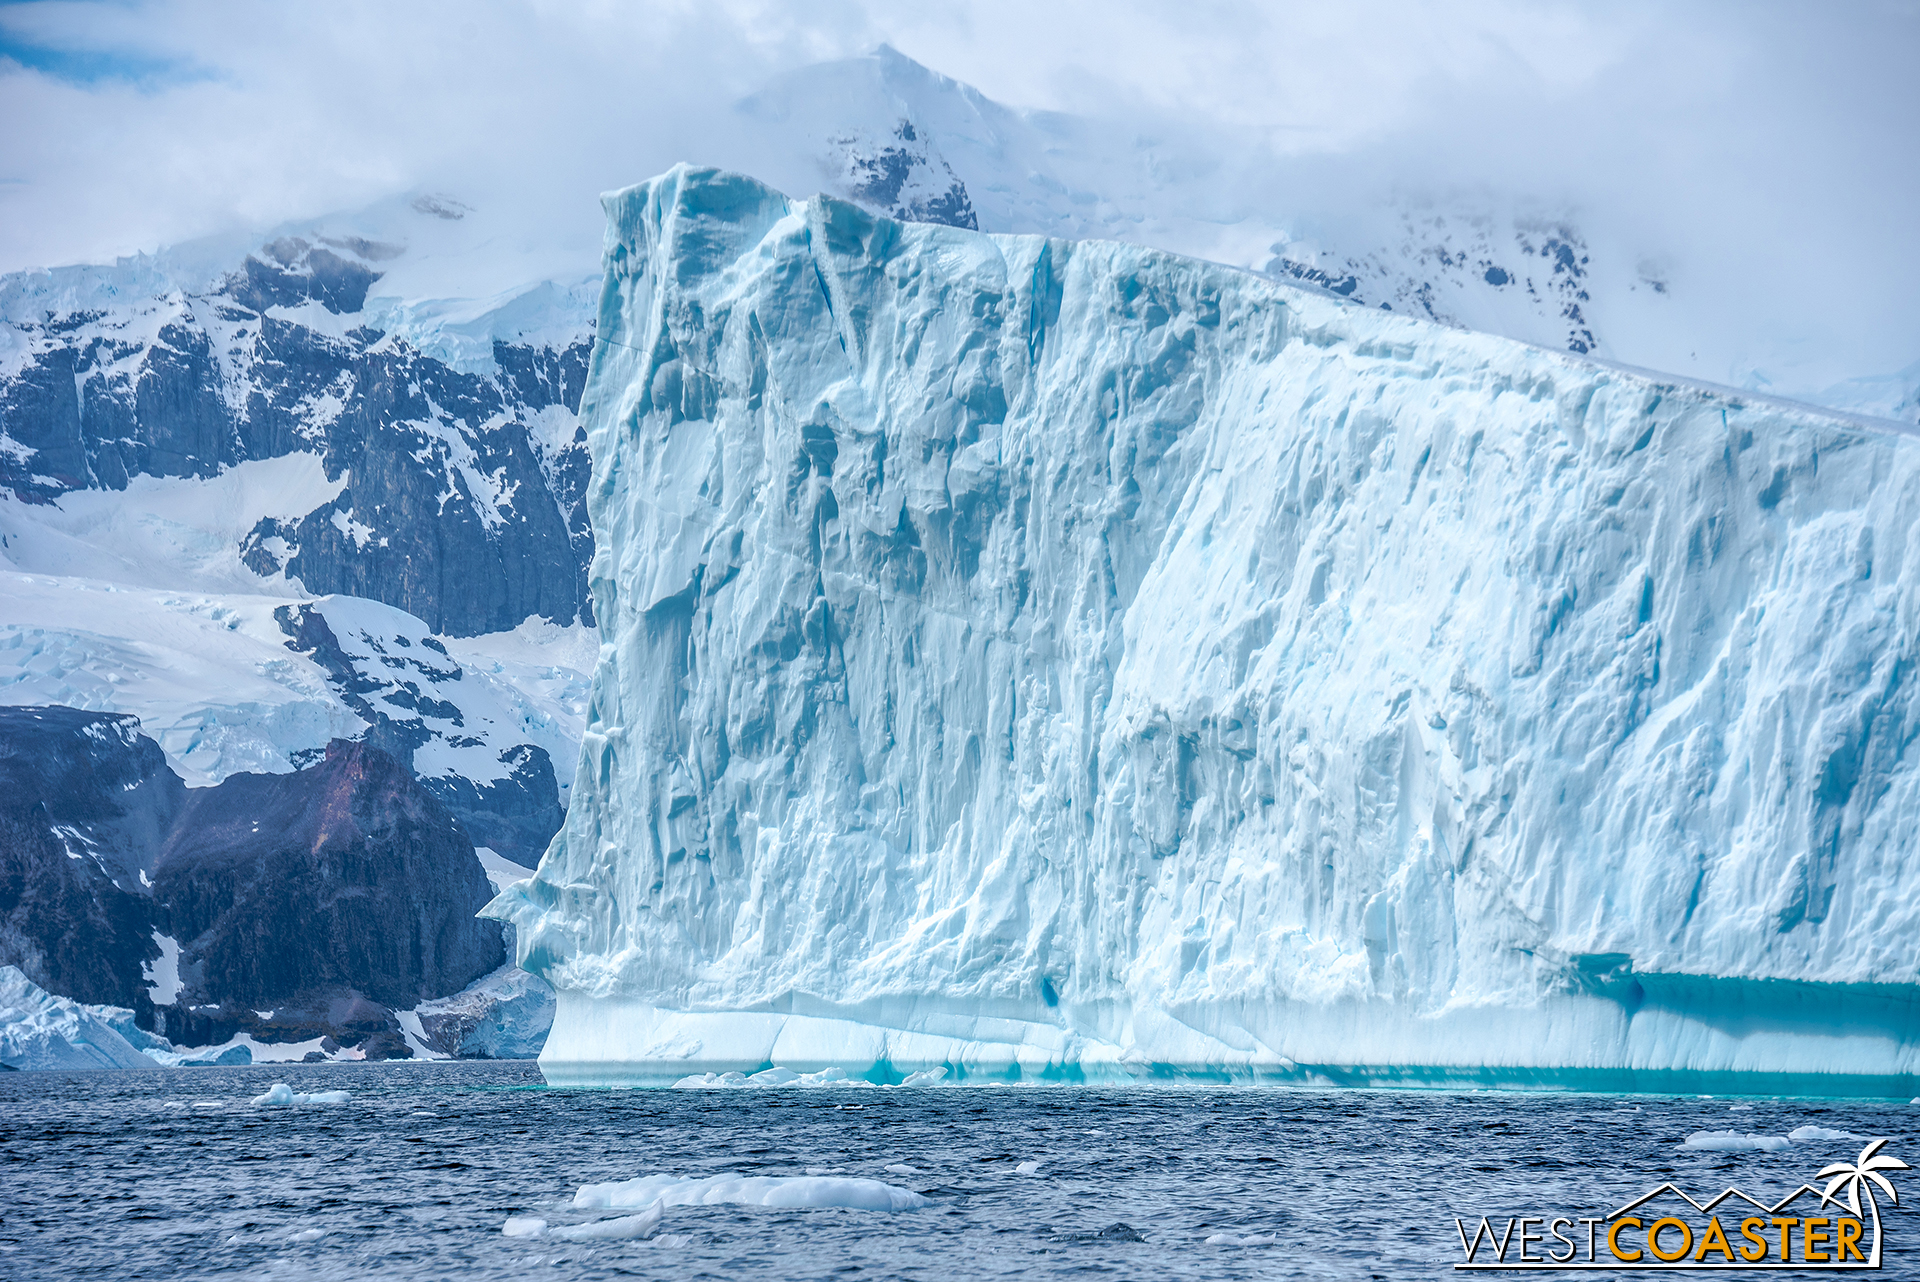 Other examples of sea ice tower well above the water.